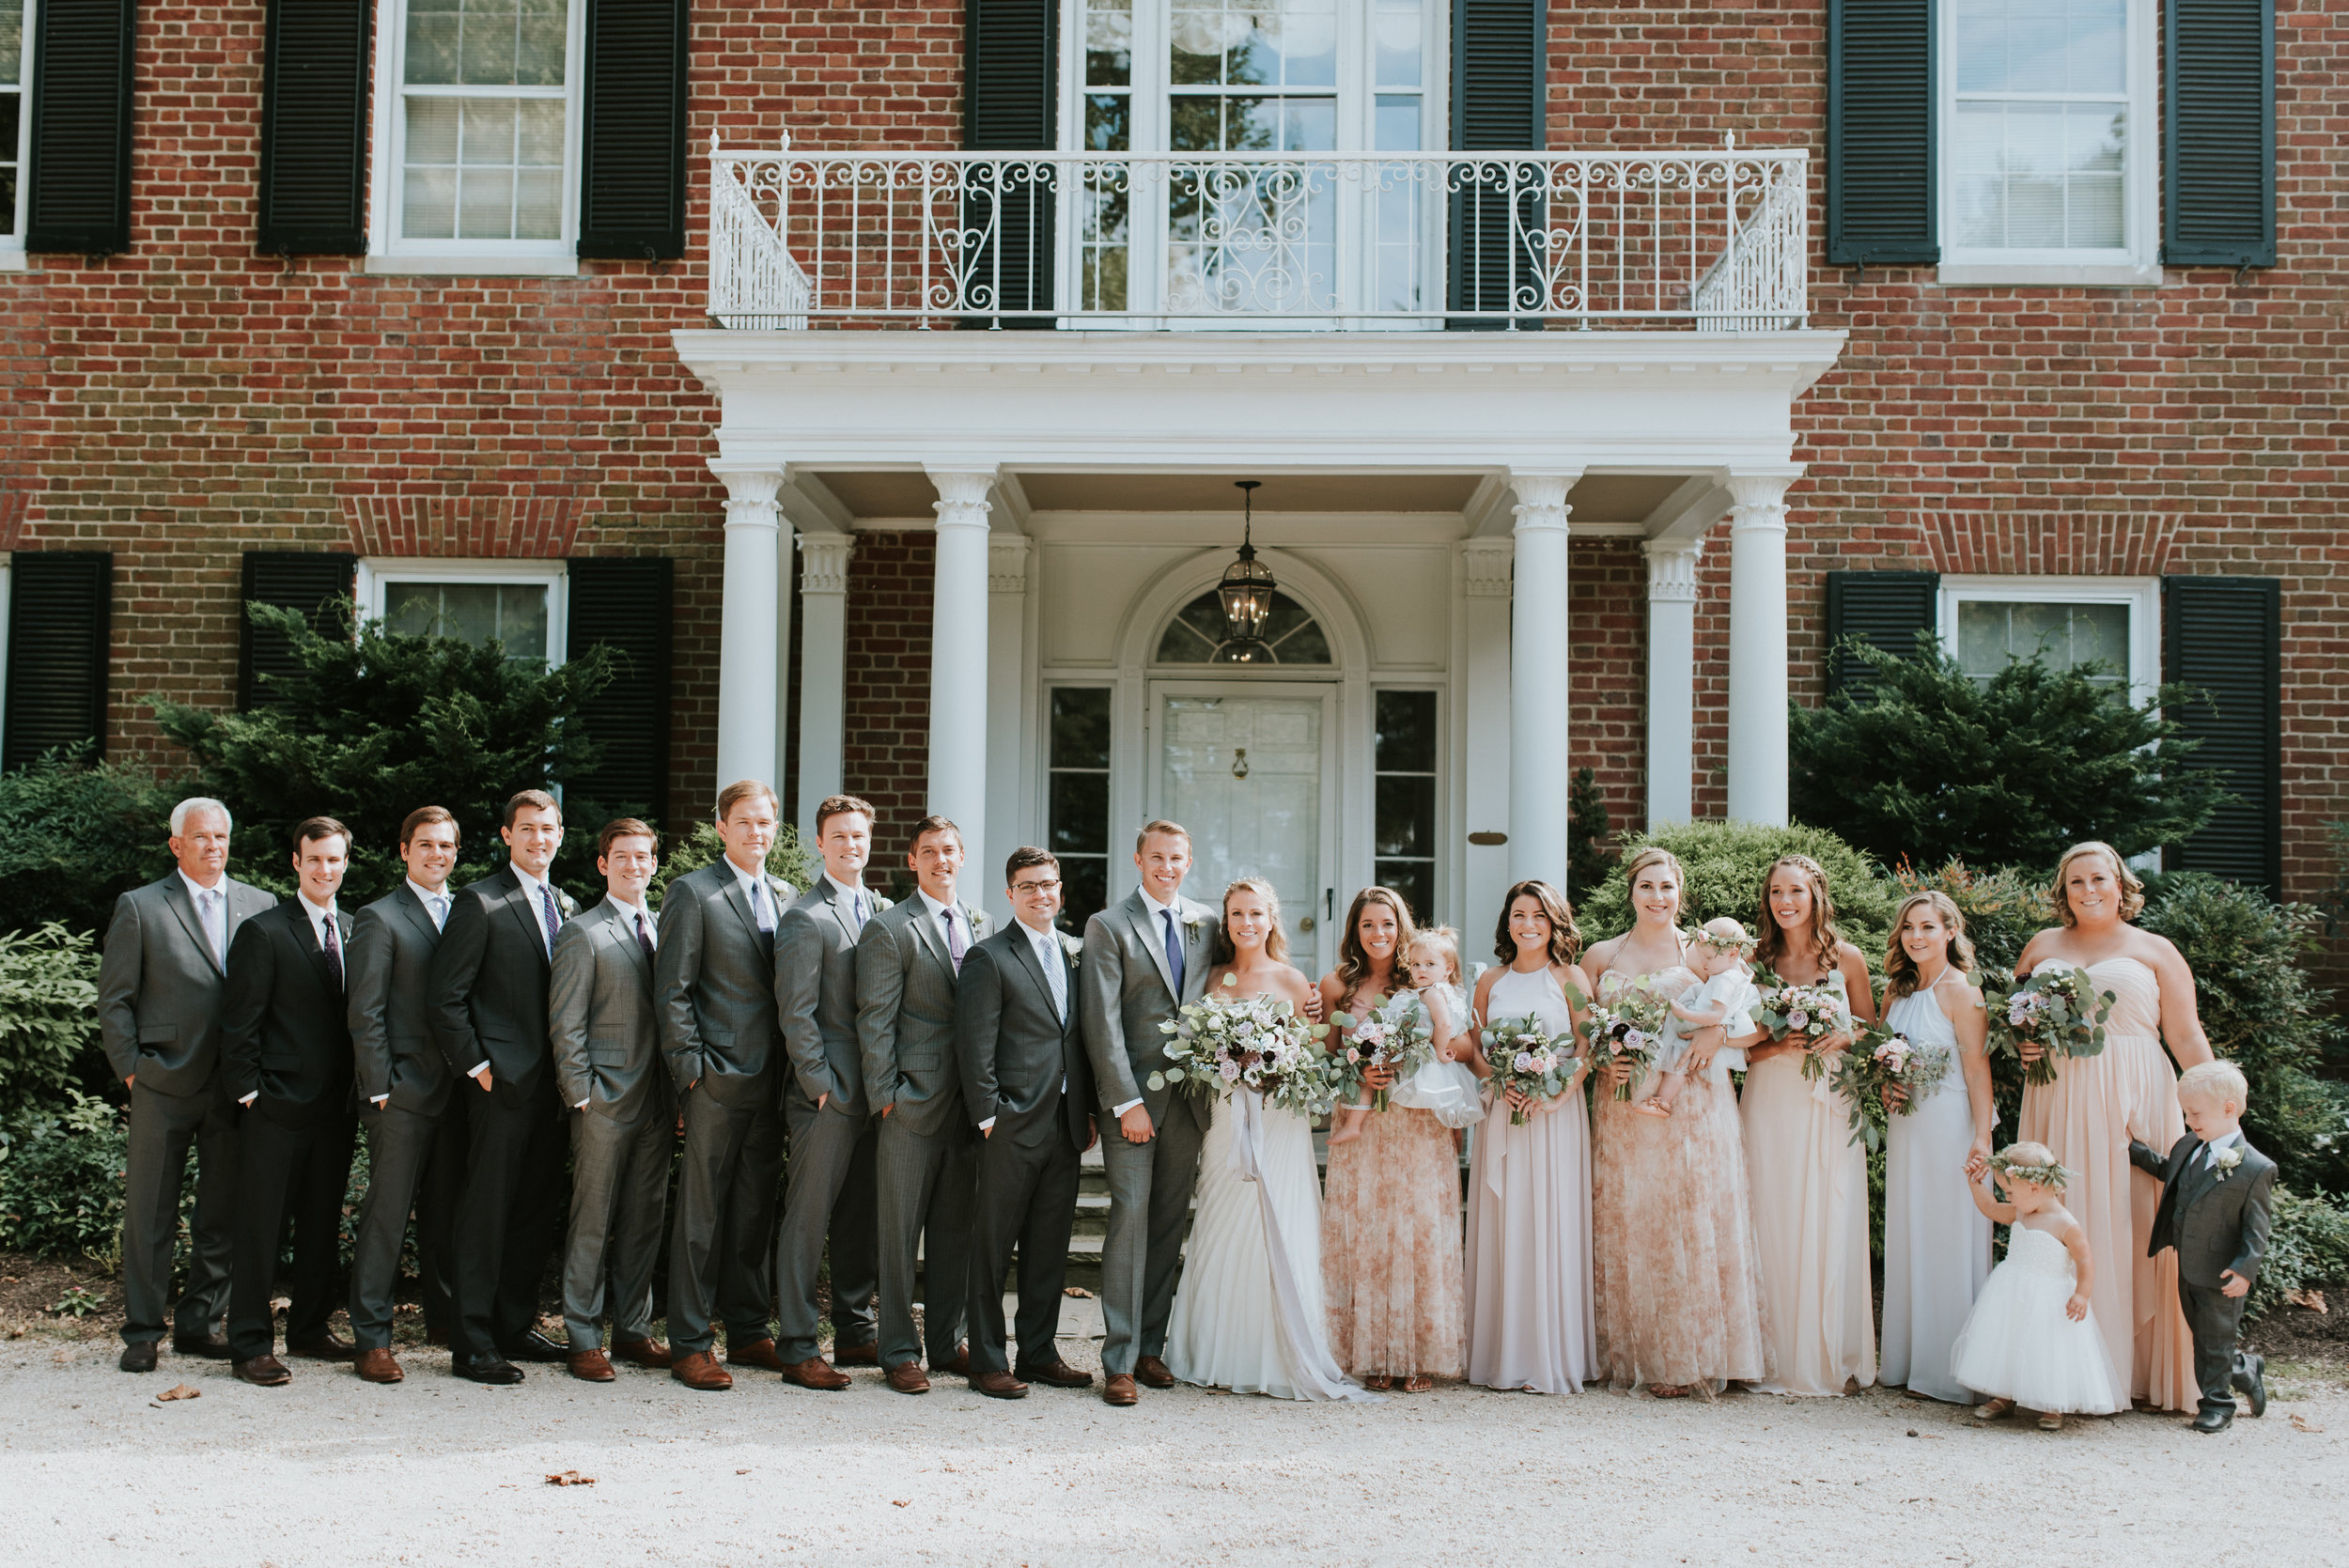 Rustic Oyster Themed Eastern Shore Maryland Outdoor Wedding by East Made Event Company Wedding Planner and Bekah Kay Creative311.jpg